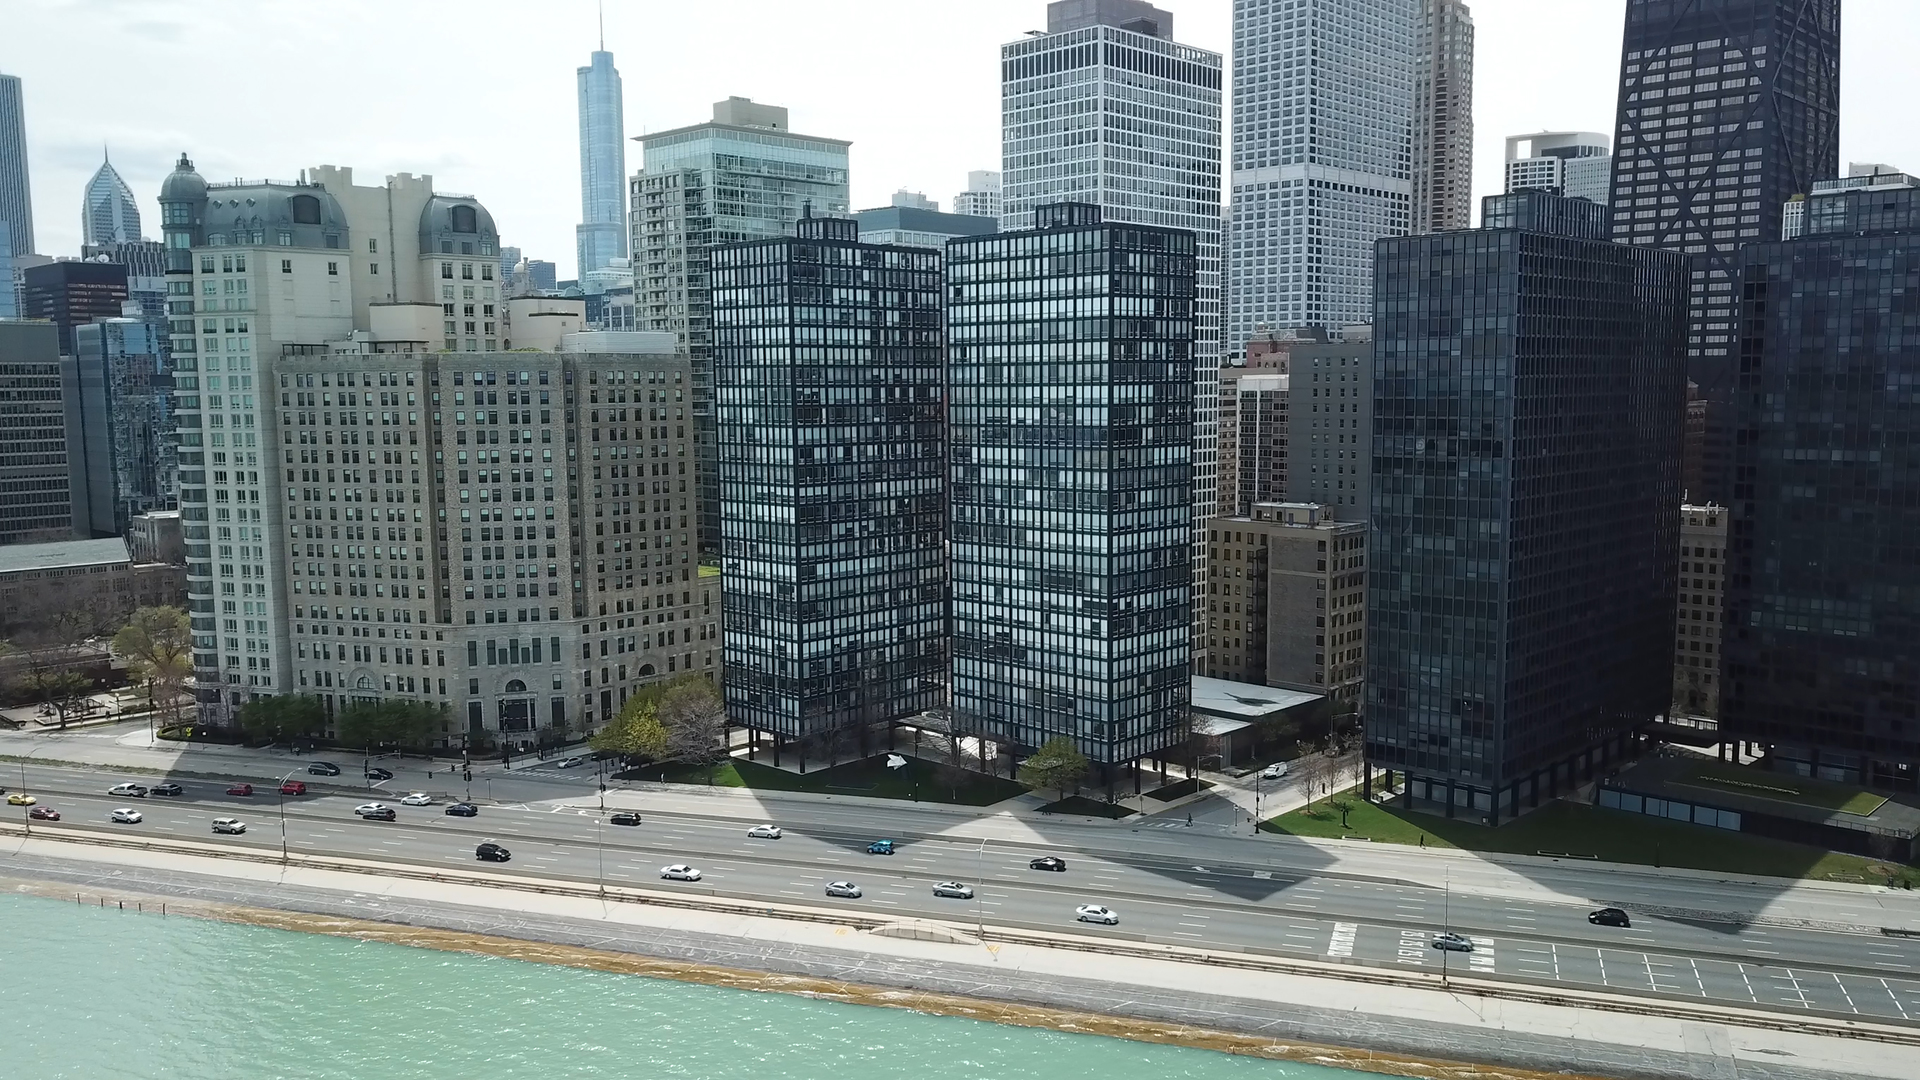 880 LAKE SHORE Drive, Chicago, Illinois 60611, 1 Bedroom Bedrooms, ,1 BathroomBathrooms,Attached Single,For Sale,LAKE SHORE,10909970